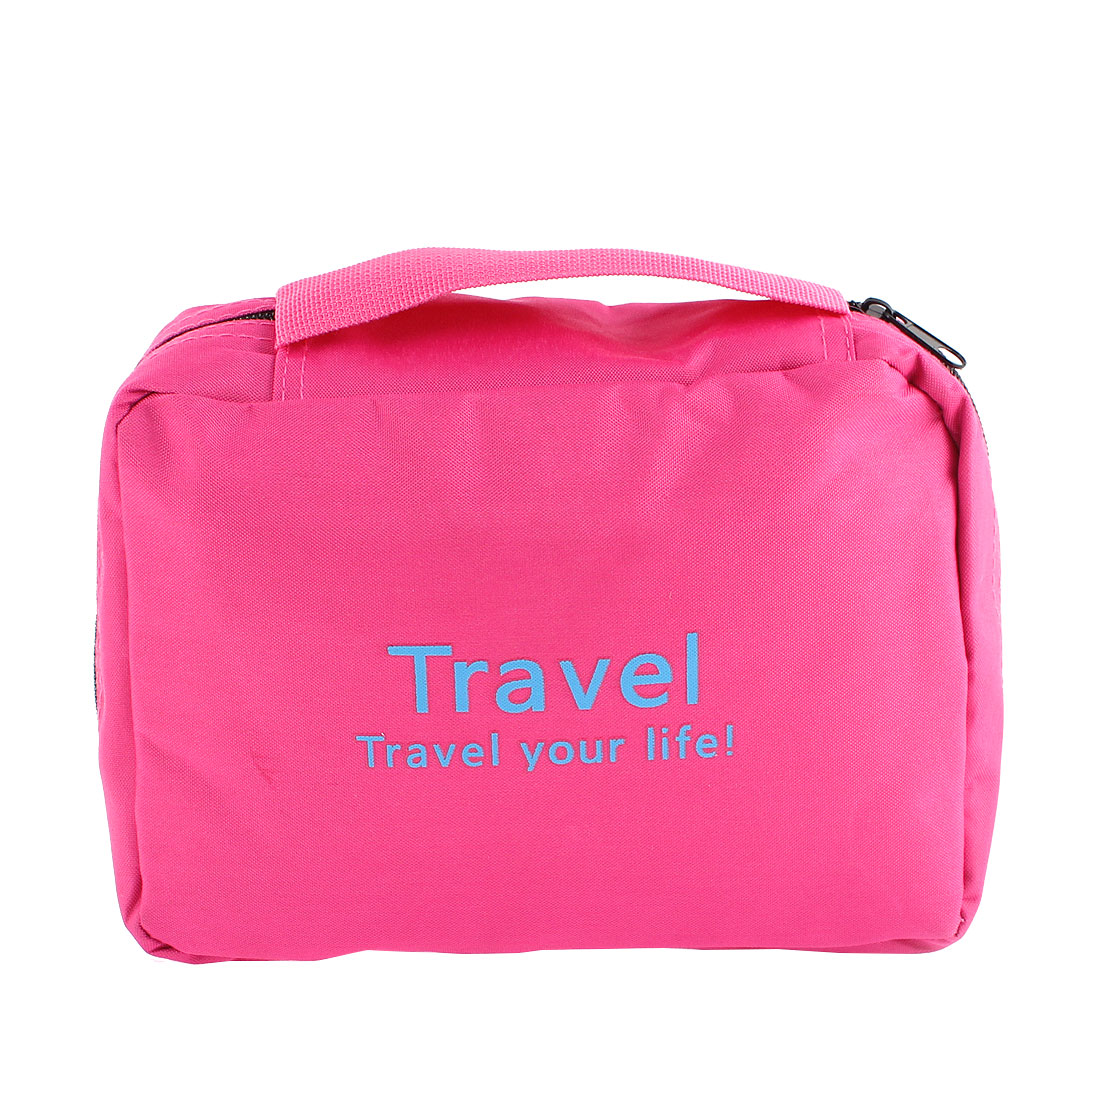 Multifunction Travel Cosmetic Bag Makeup Pouch Toiletry Case Fuchsia